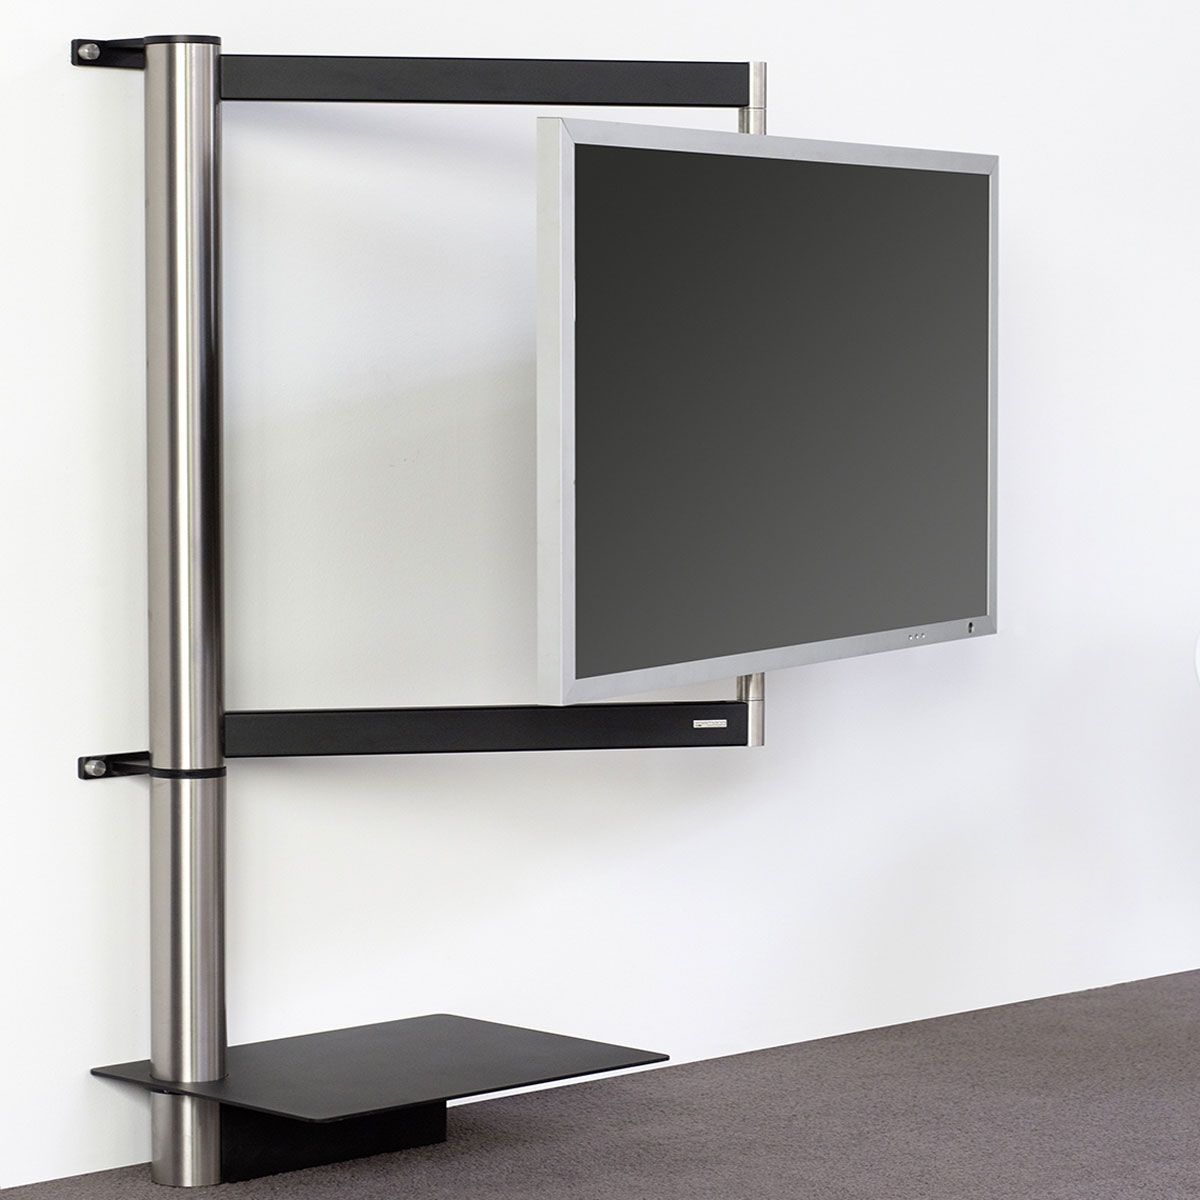 tv wandhalter fernsehhalter schwenkbar rack schwenkarm tv pinterest tv halterung tv m bel. Black Bedroom Furniture Sets. Home Design Ideas